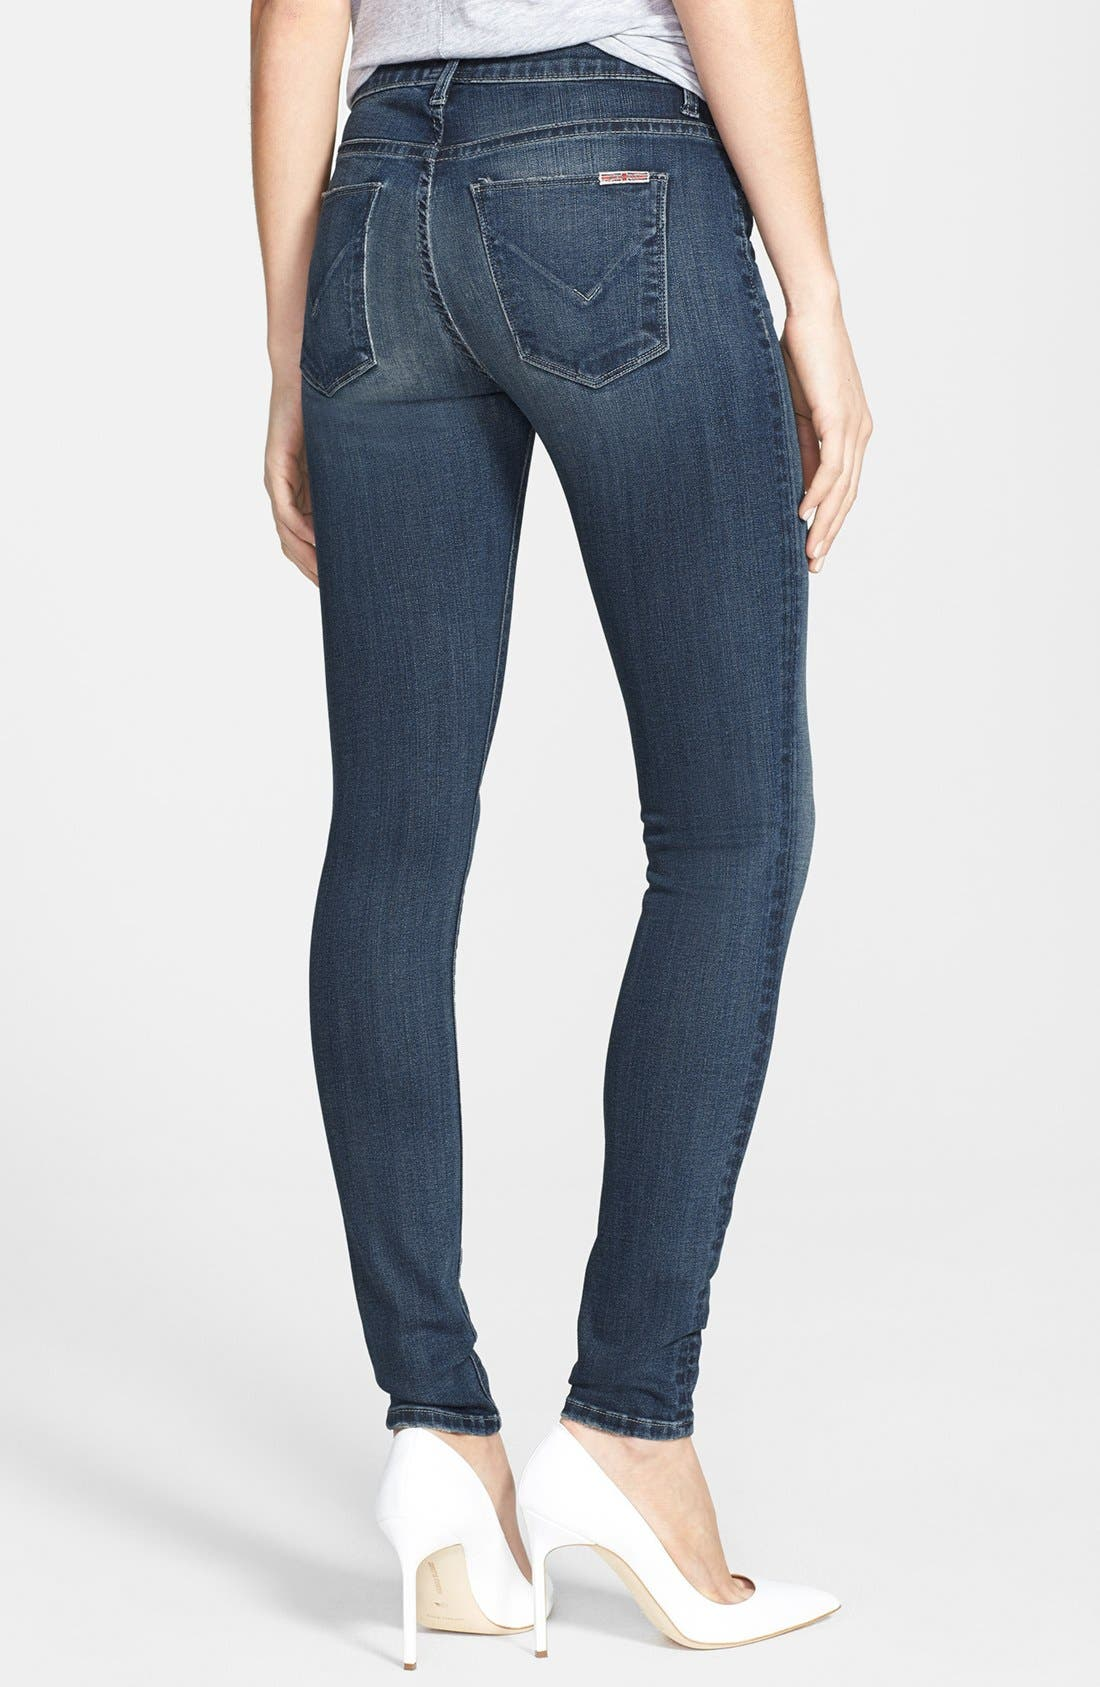 Alternate Image 2  - Hudson Jeans 'Nico' Super Skinny Jeans (Epic Wash)